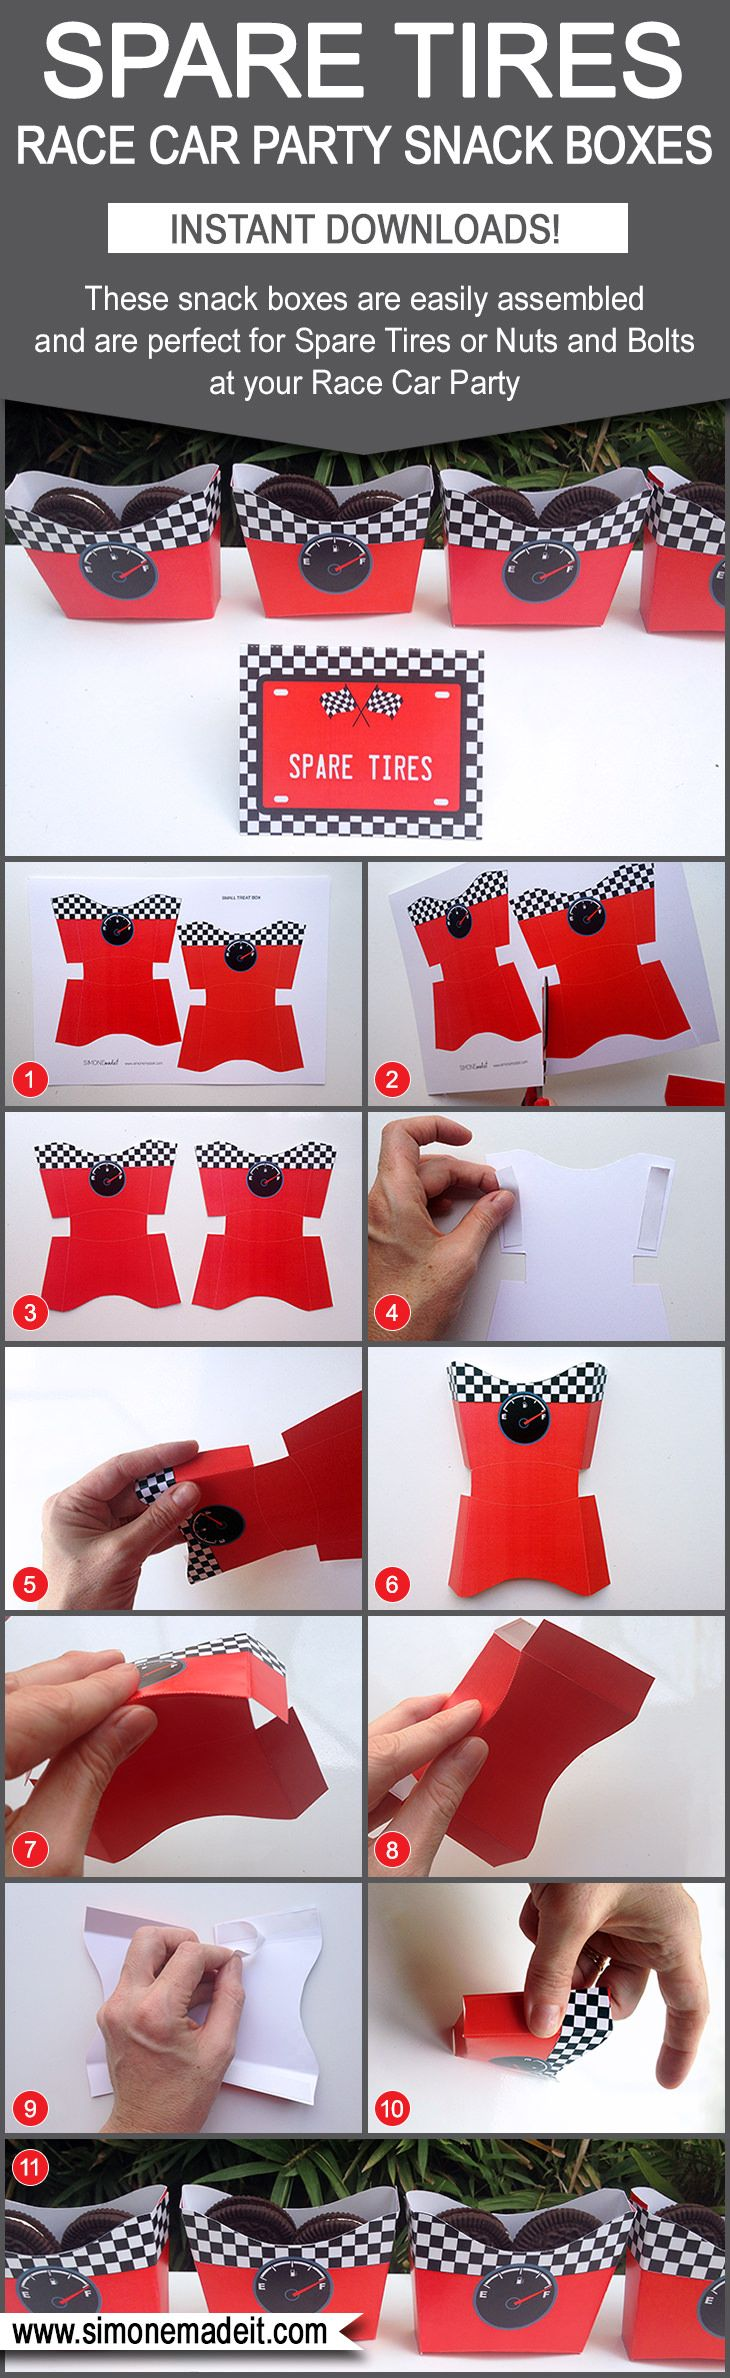 Race Car Party Food Ideas - Spare Tire Snack Boxes & Food Labels | DIY Templates for Race Car Birthday Party Theme